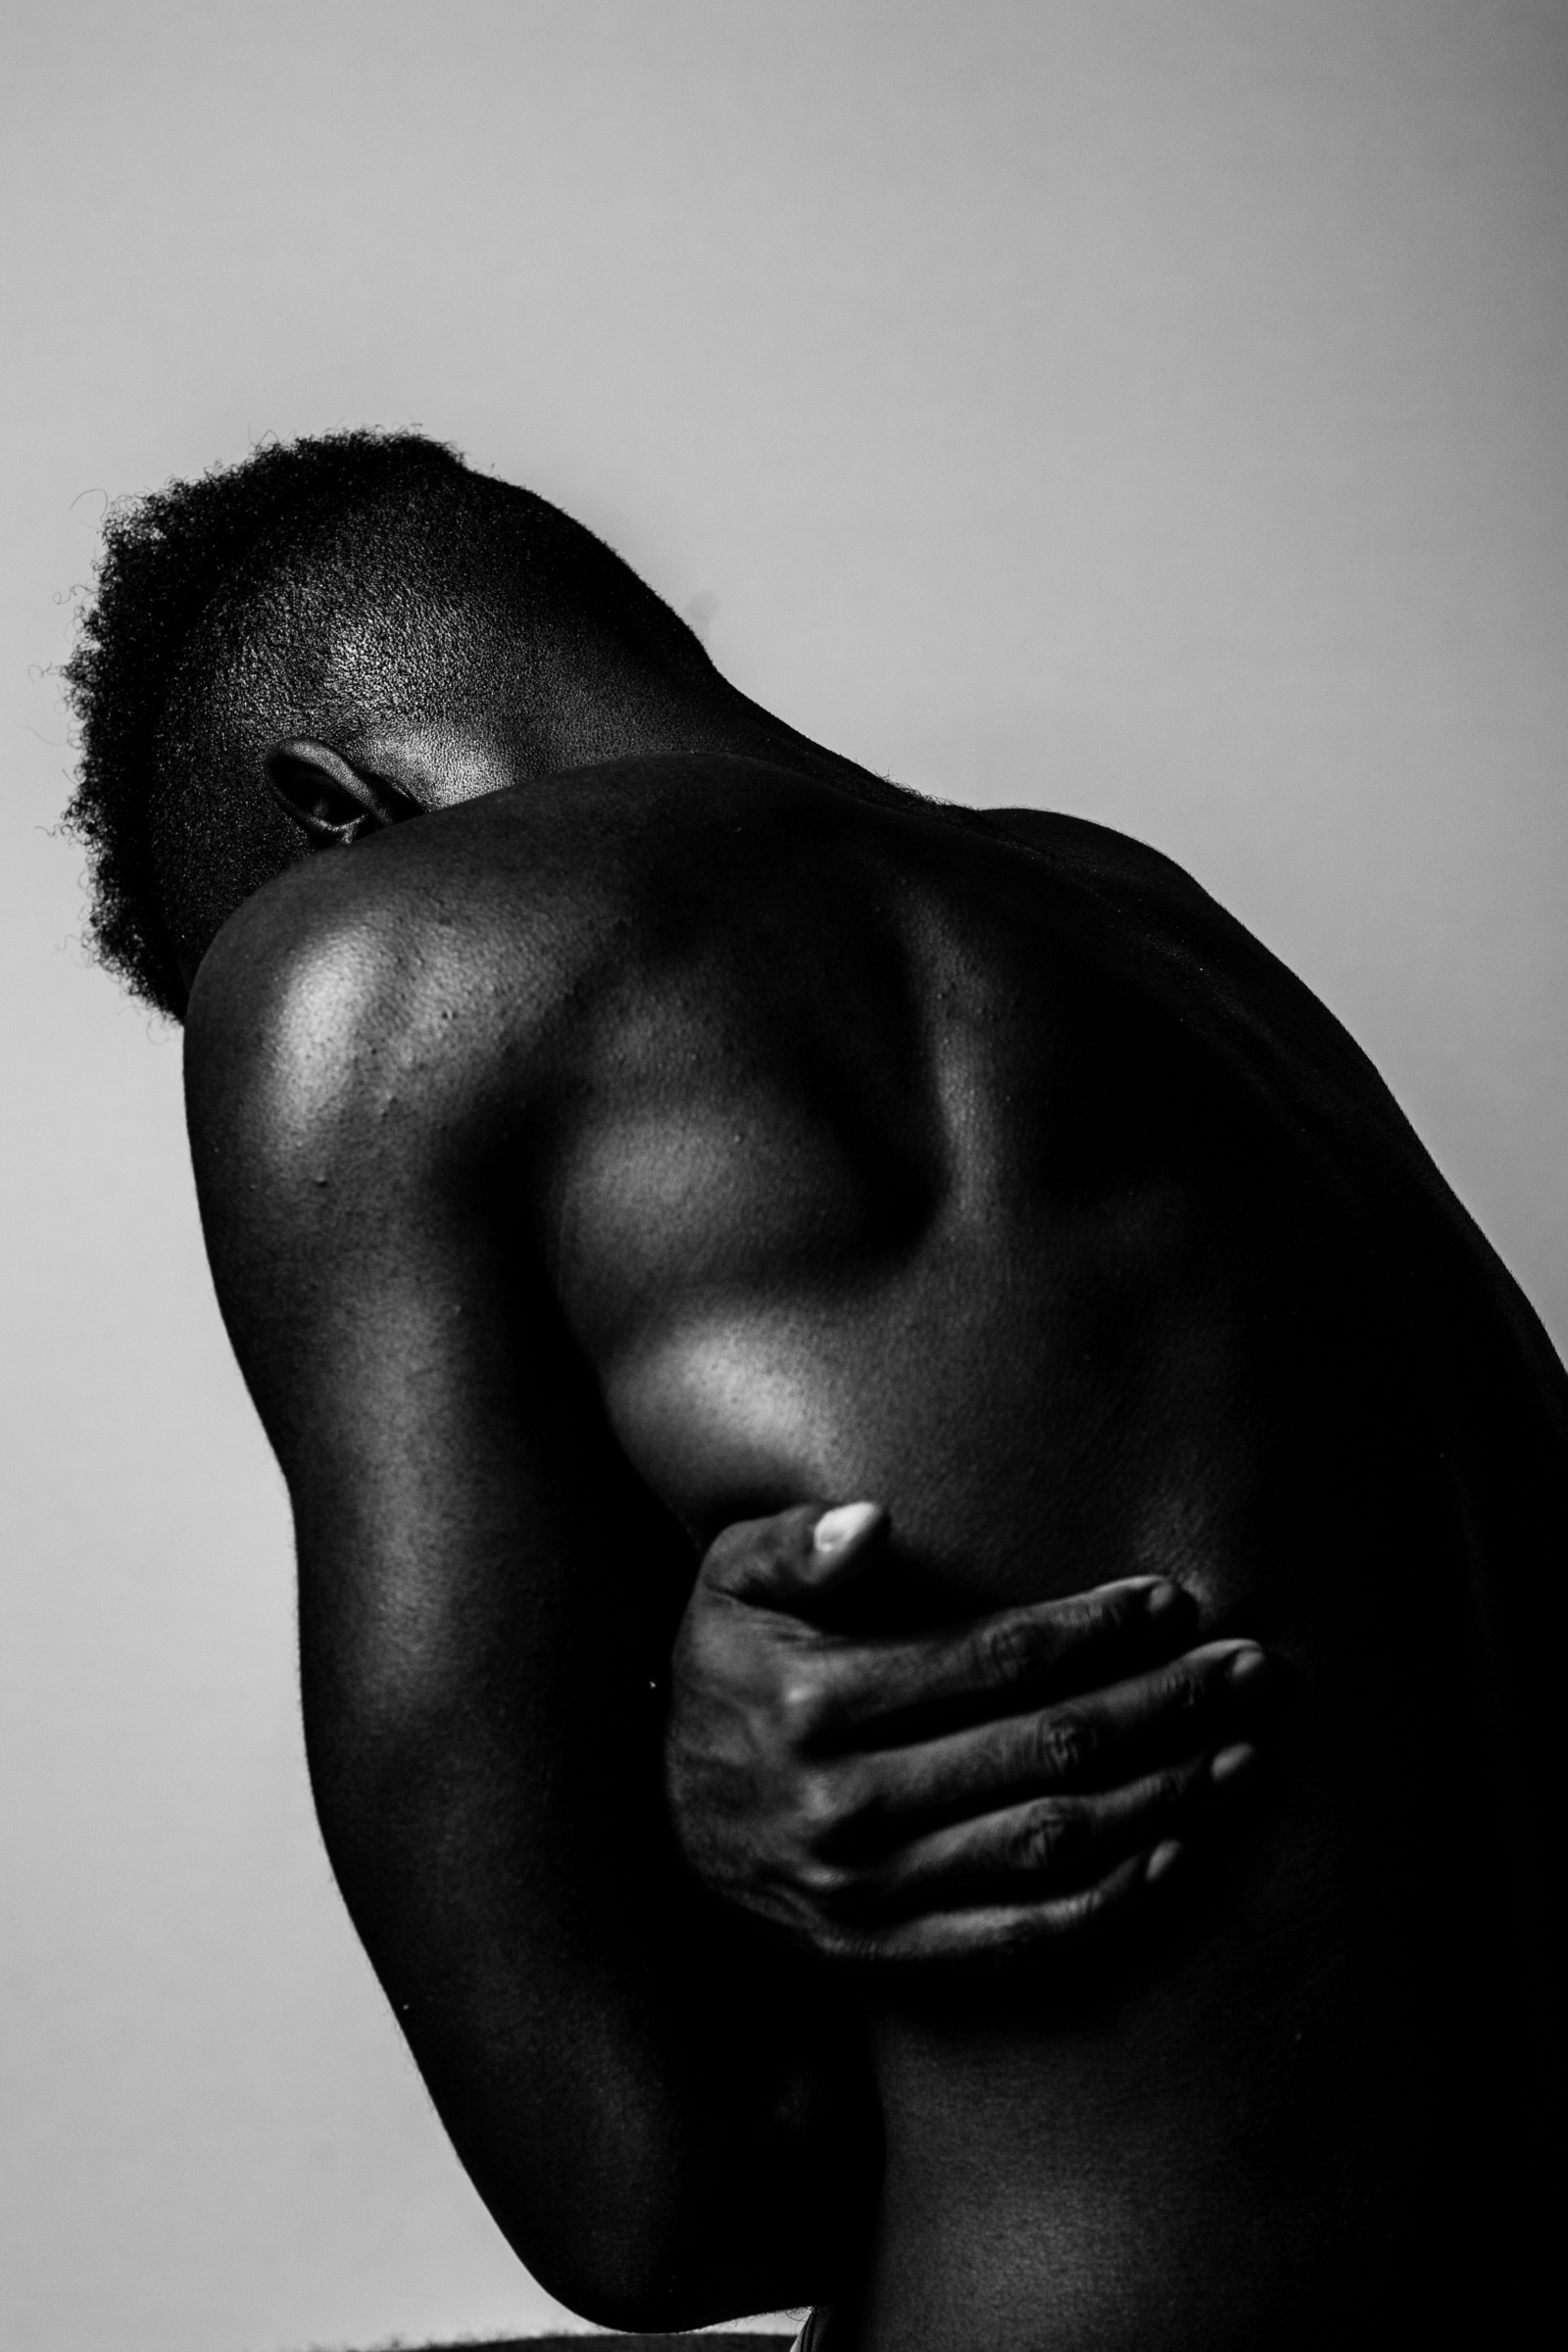 Sexual stereotypes of black men